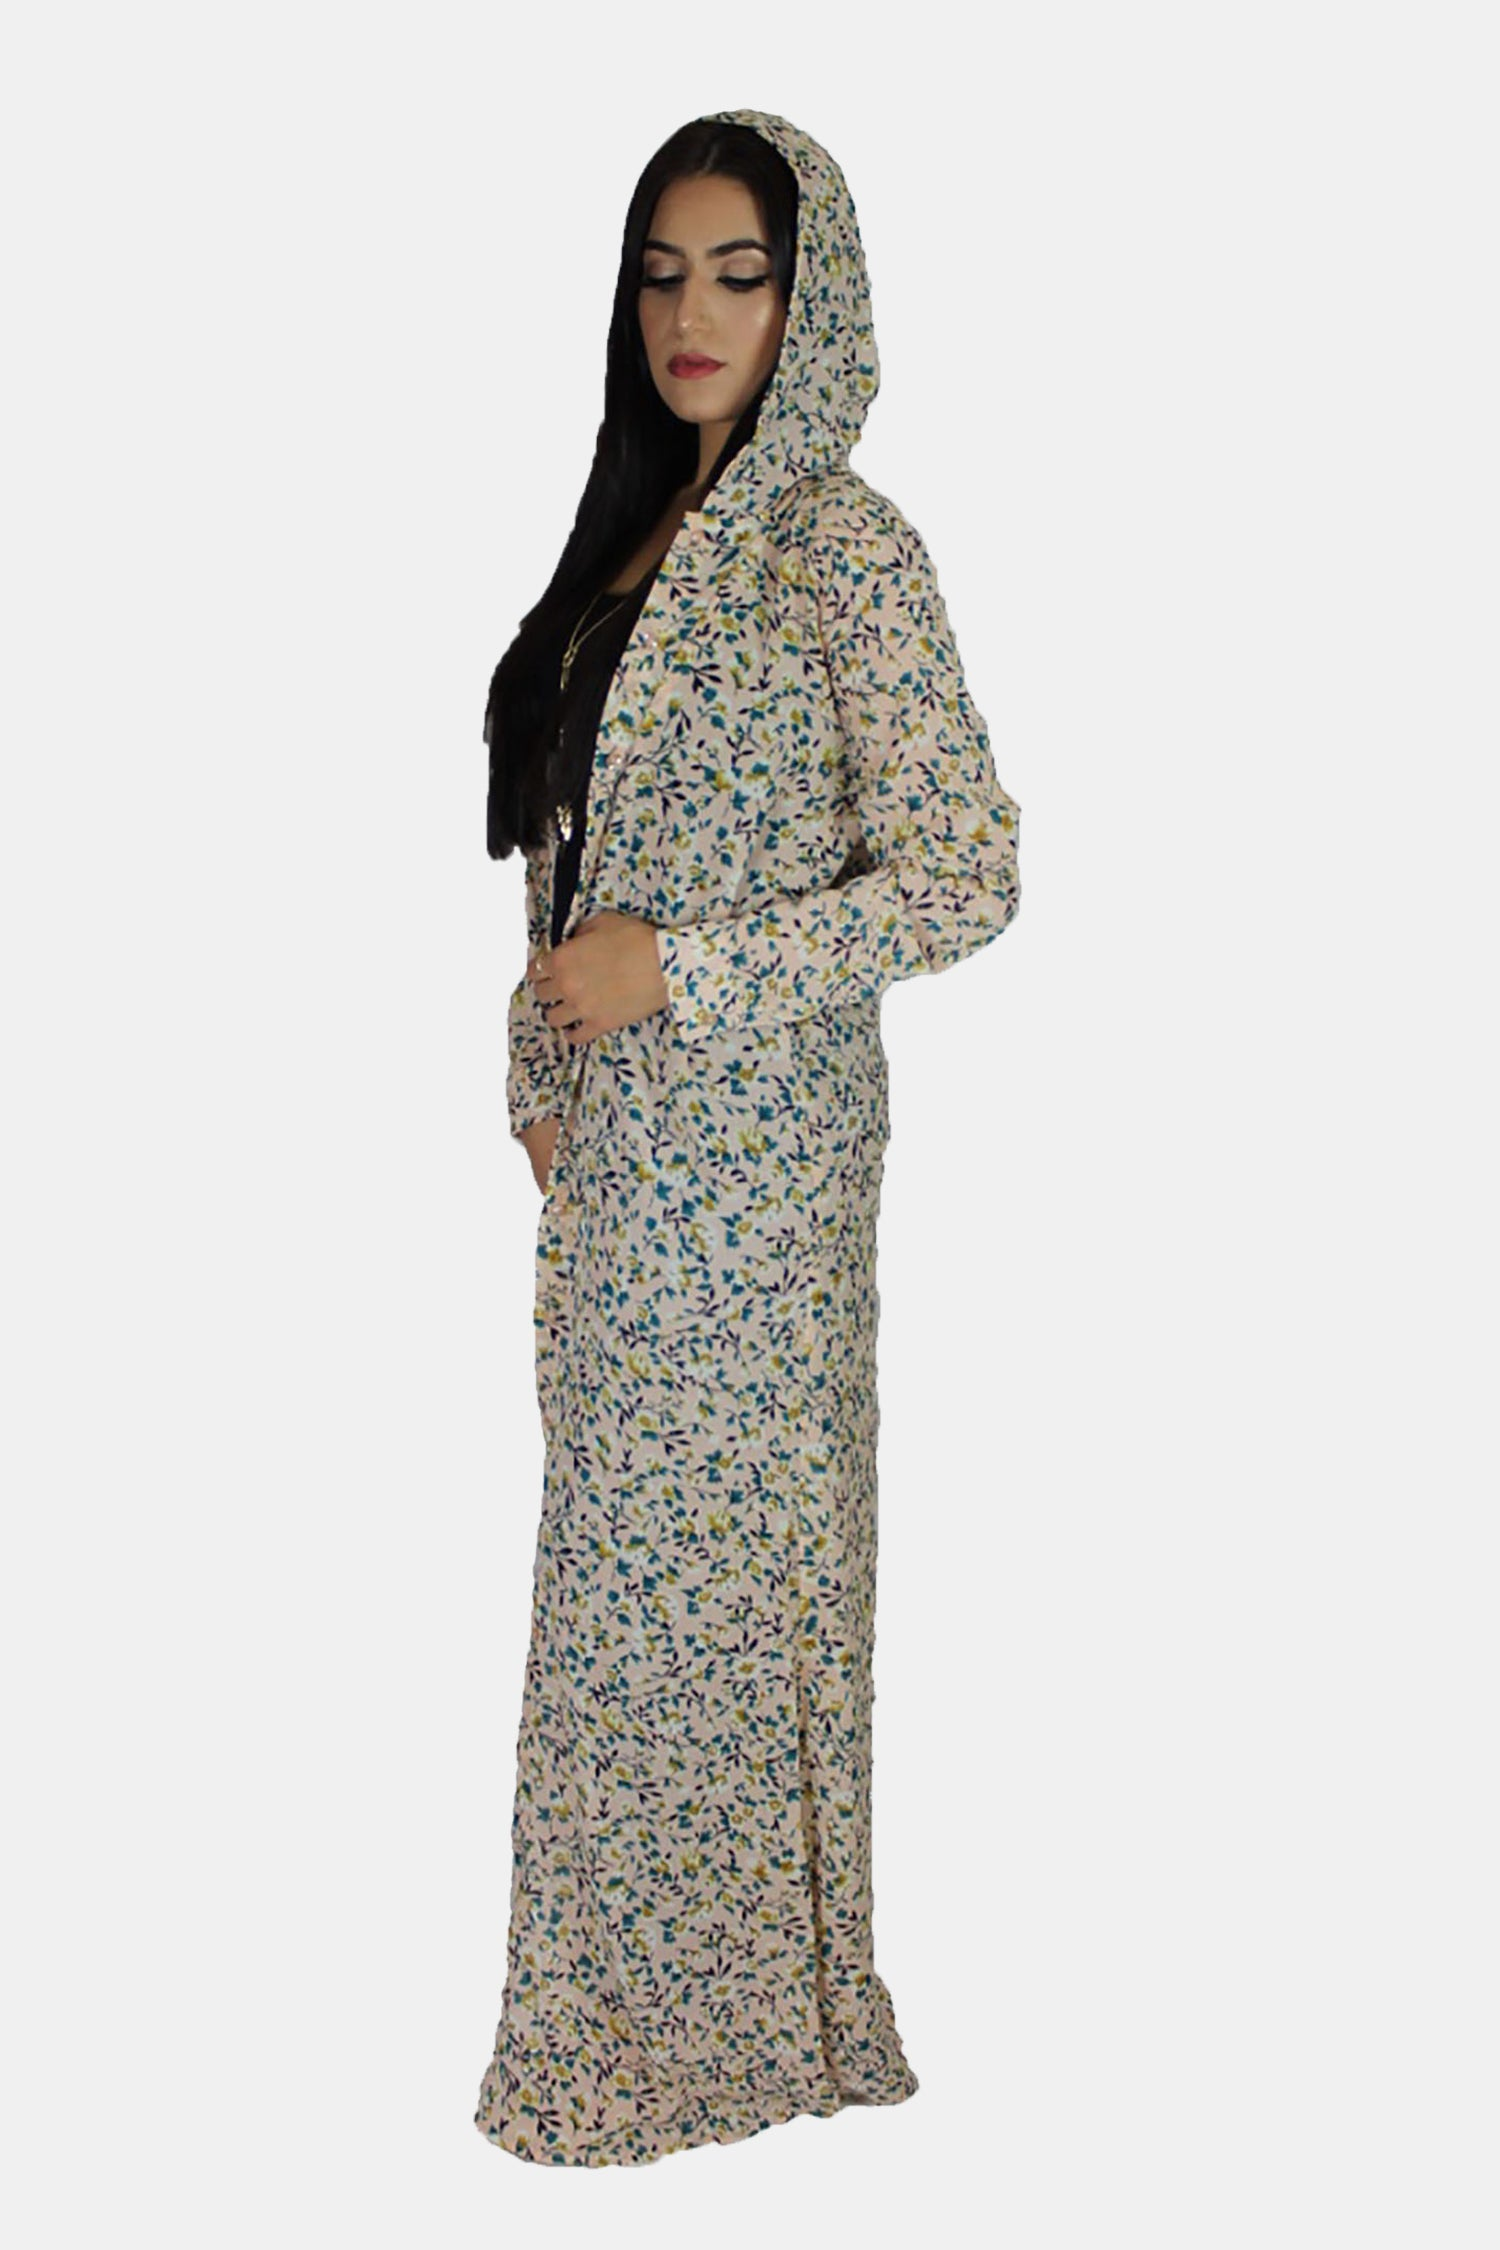 8c93d519c63 Pink Floral Chiffon Hooded Abaya Buttoned-Down Cardigan Dress ...